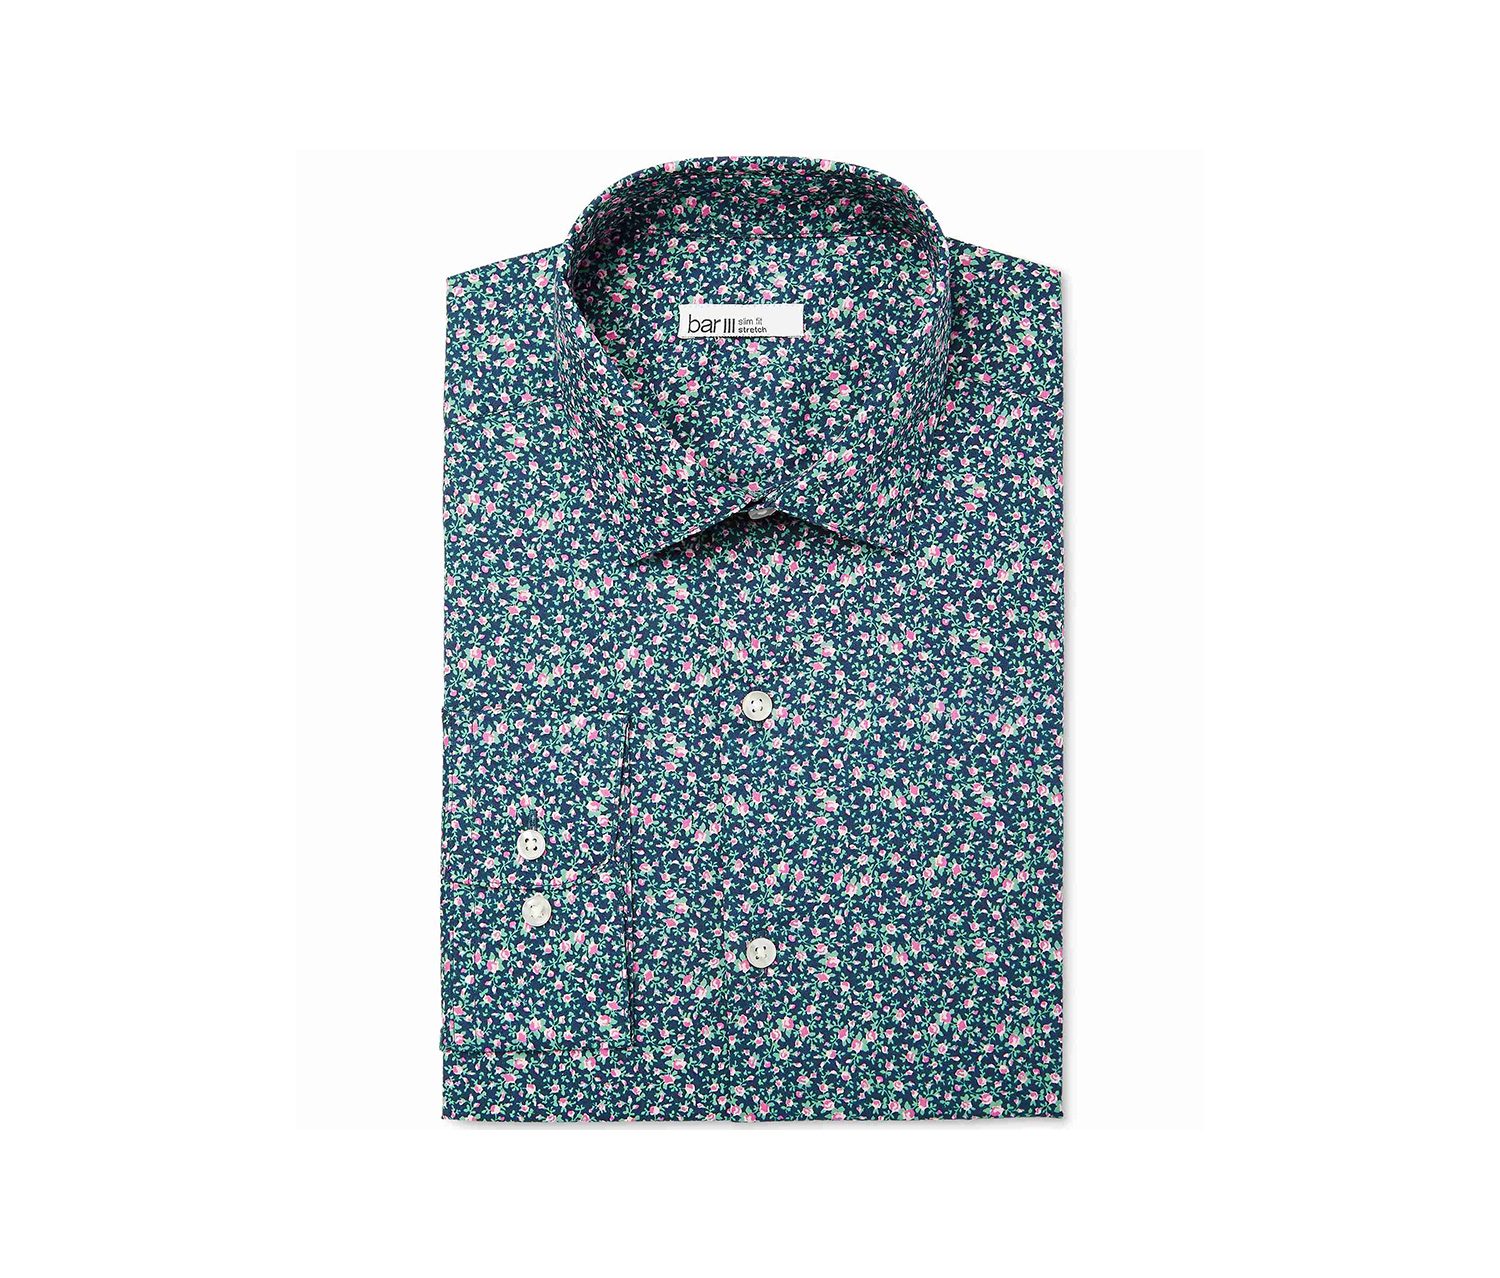 Men's Floral Print Dress Shirt, Navy/Pink